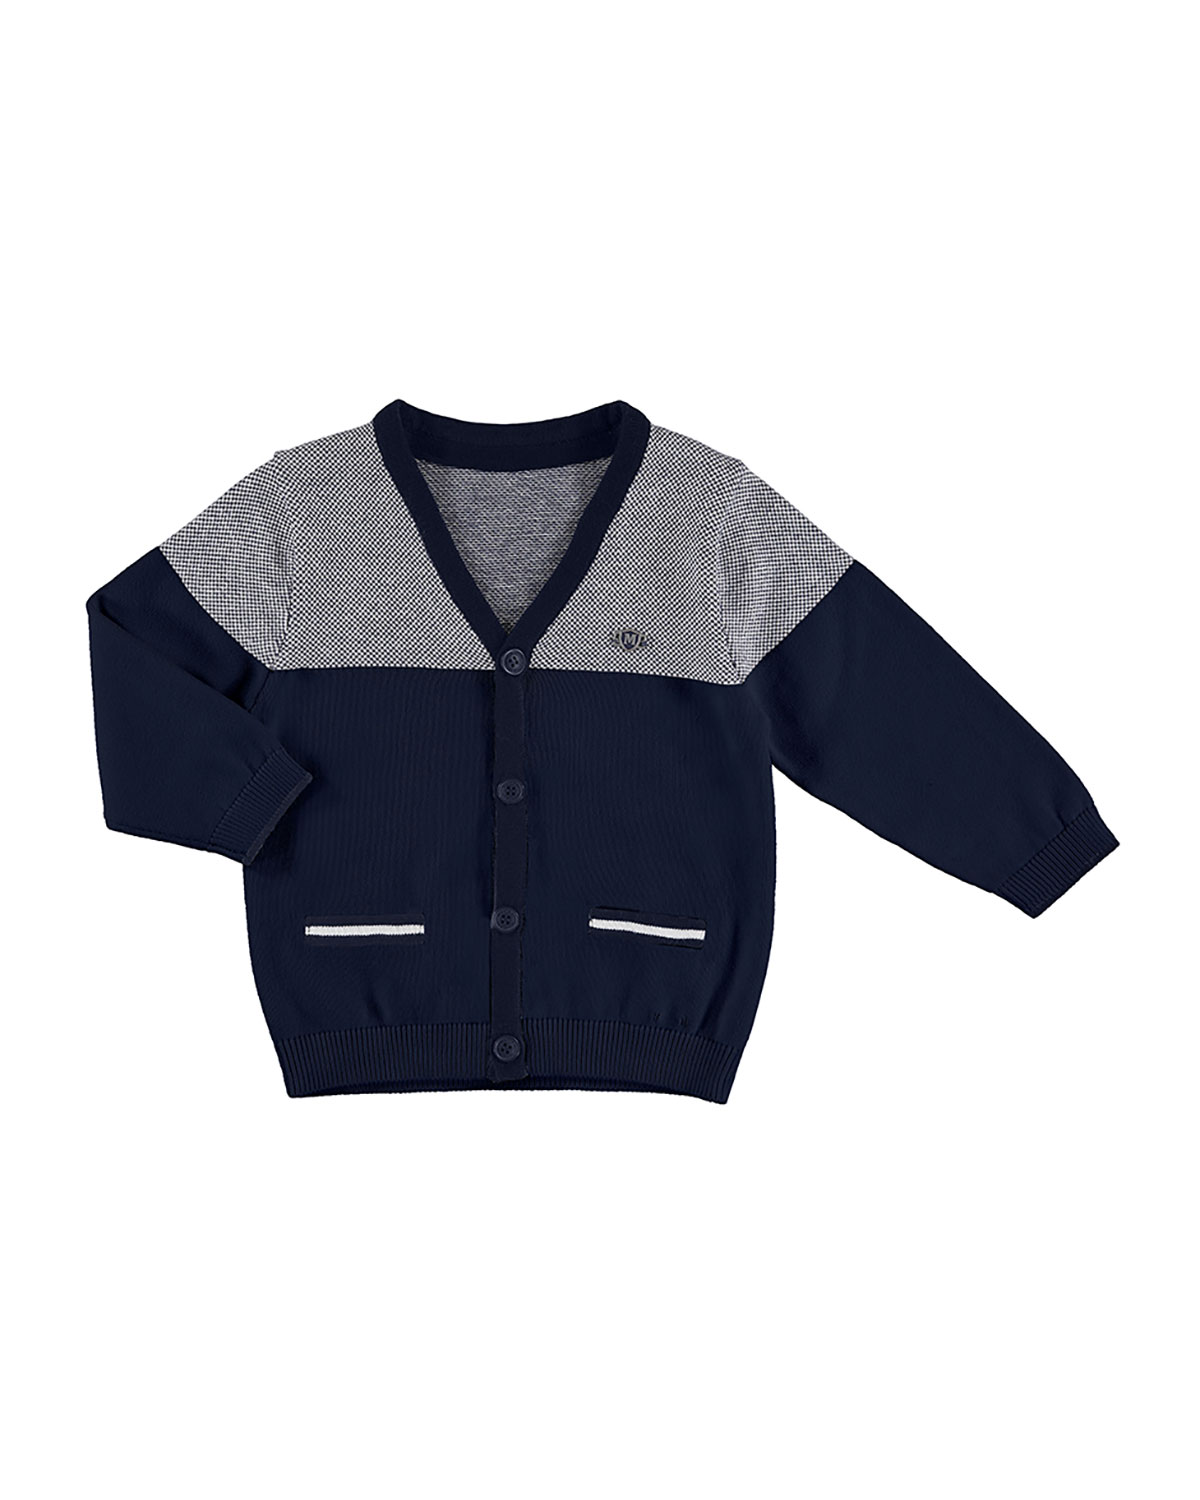 Colorblock Cotton Birdseye Sweater, Navy, Size 12-36 Months